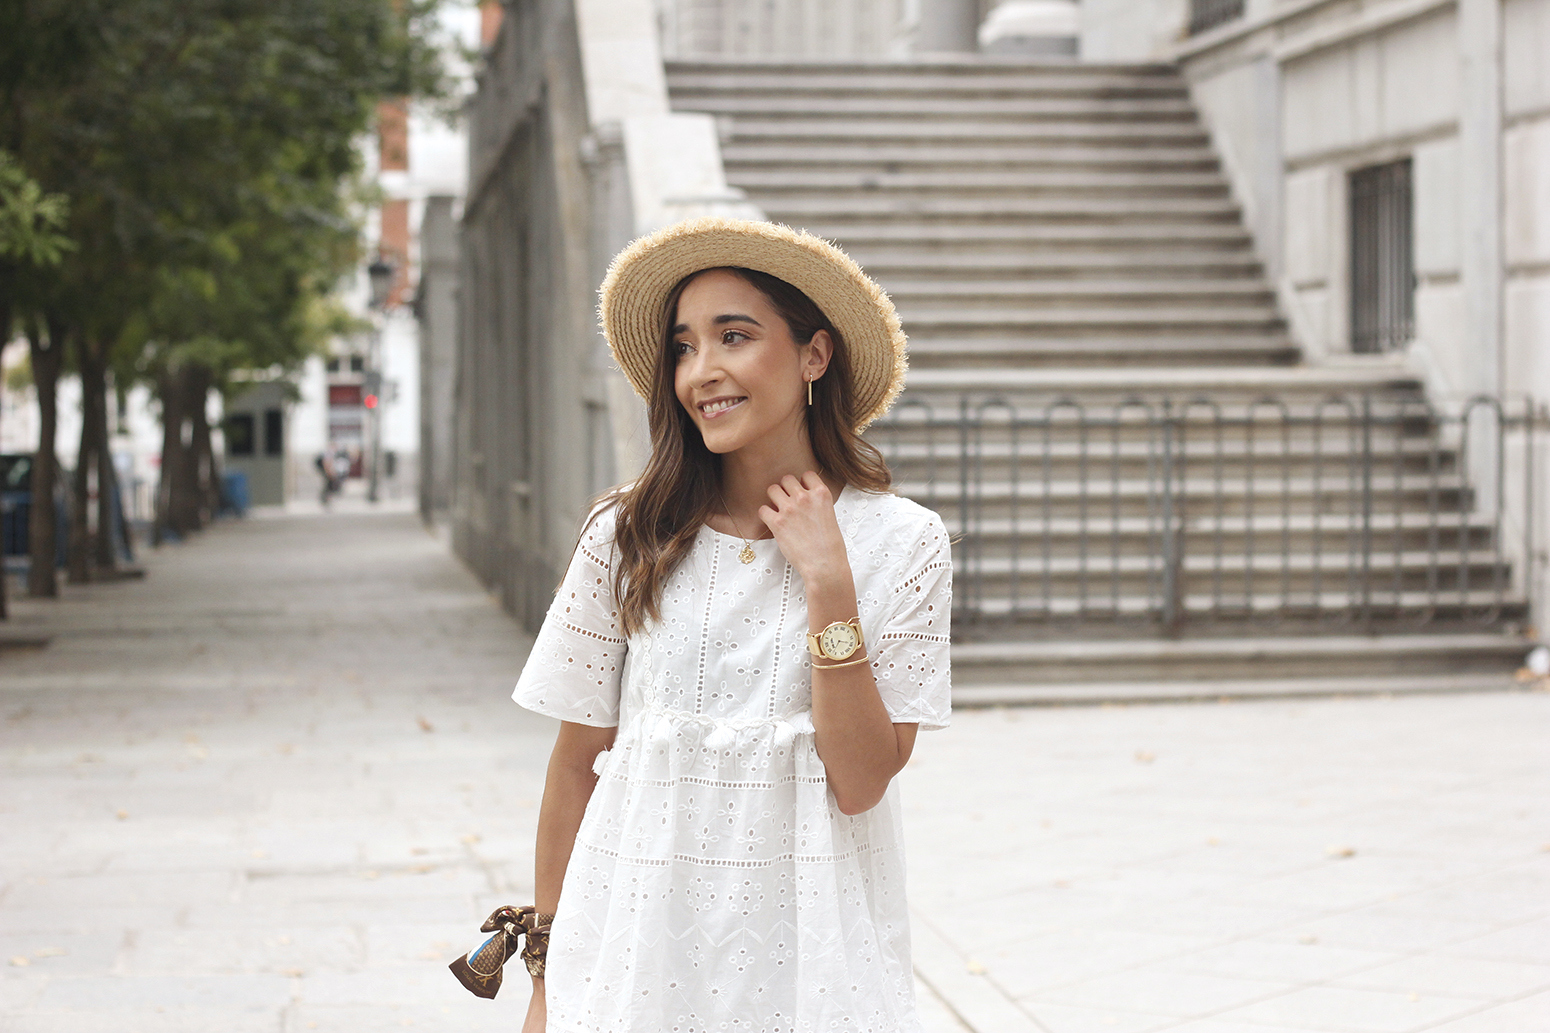 White summer dress canotier street style outfit 201915